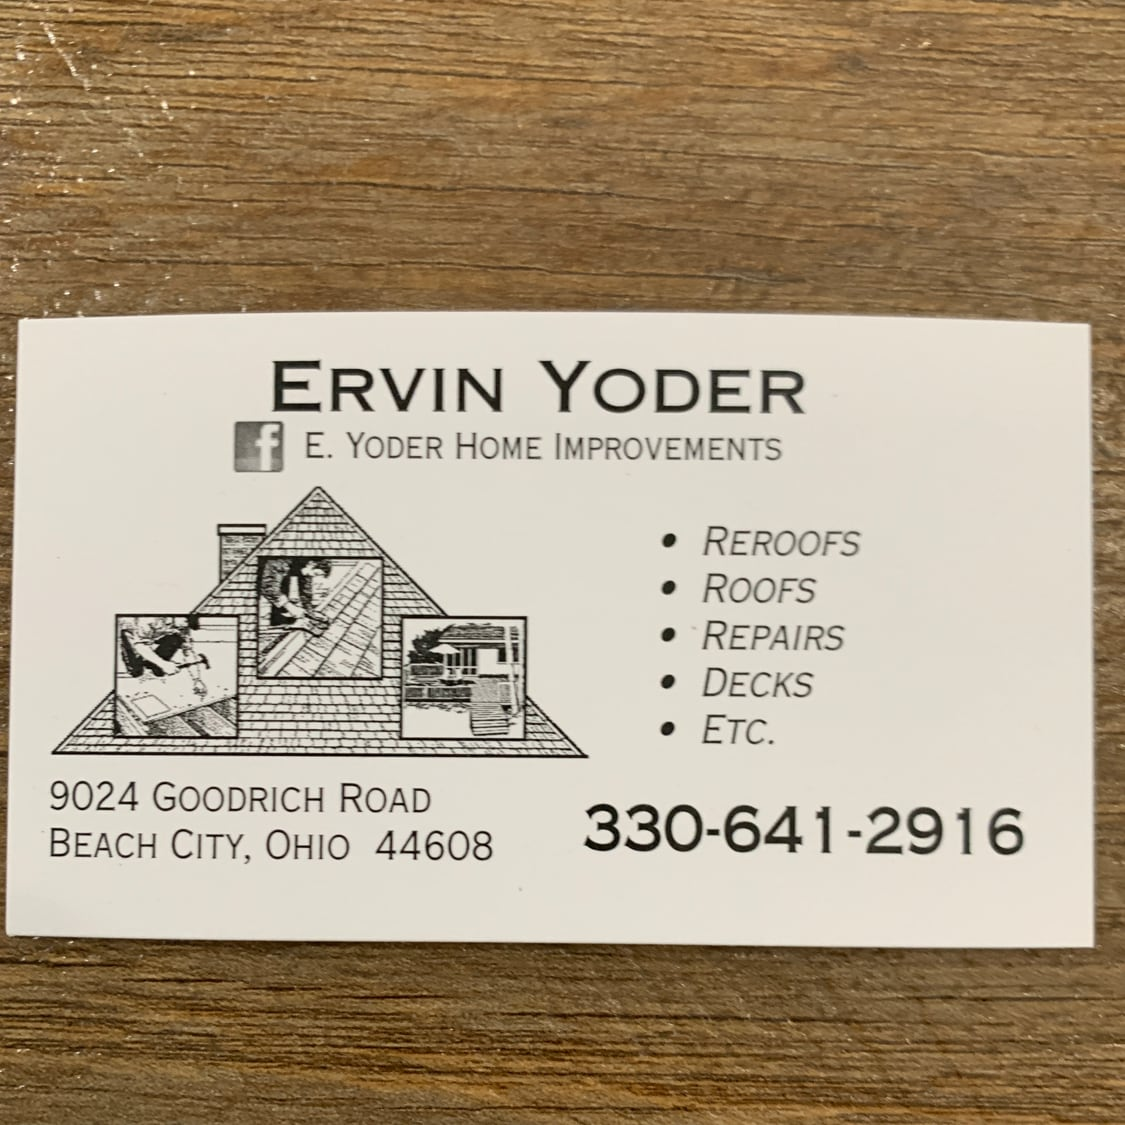 E. Yoder Home Improvements